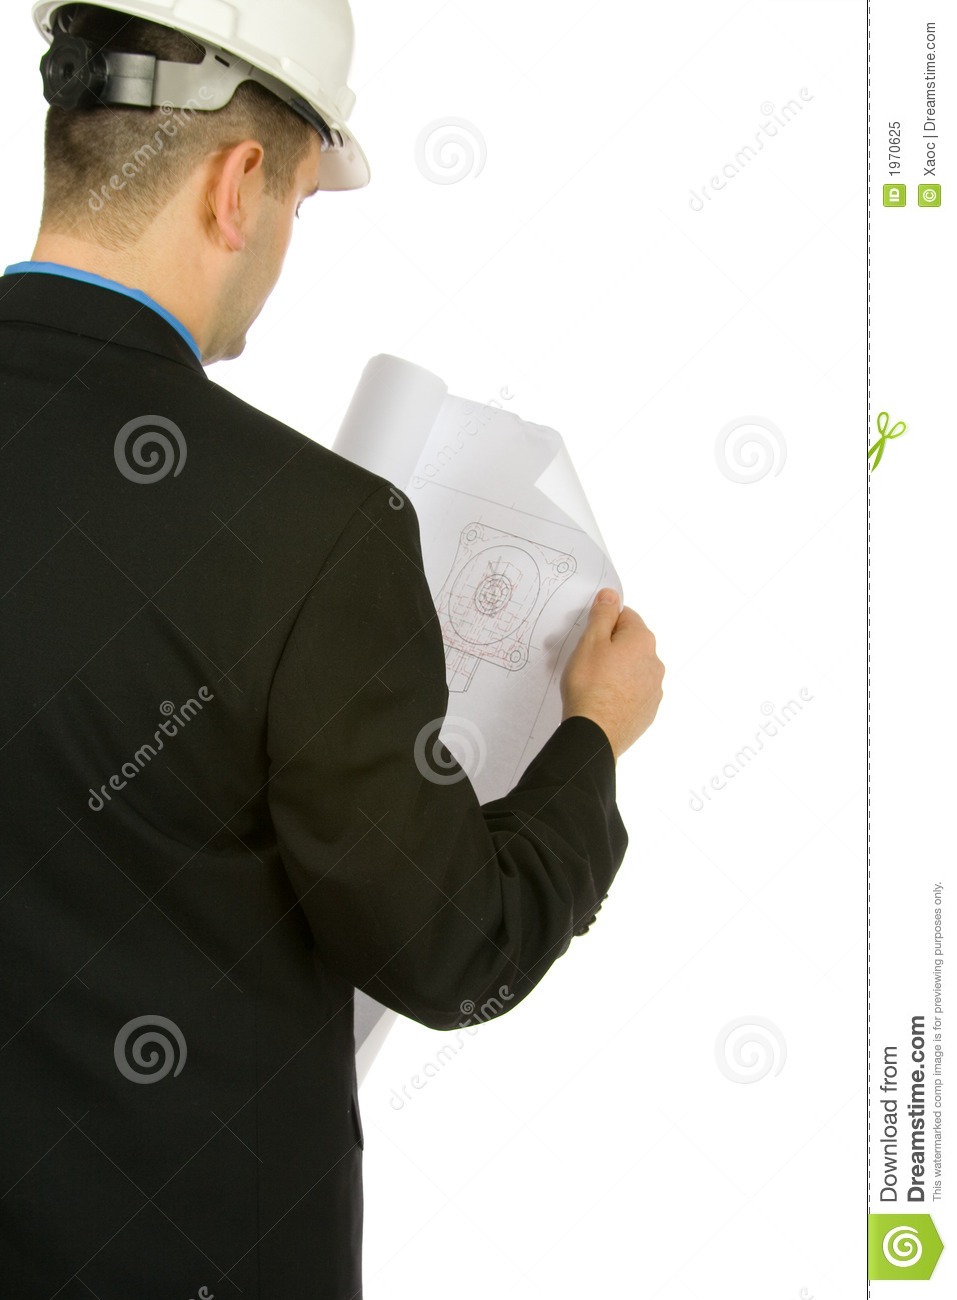 Engineer inspecting a drawing